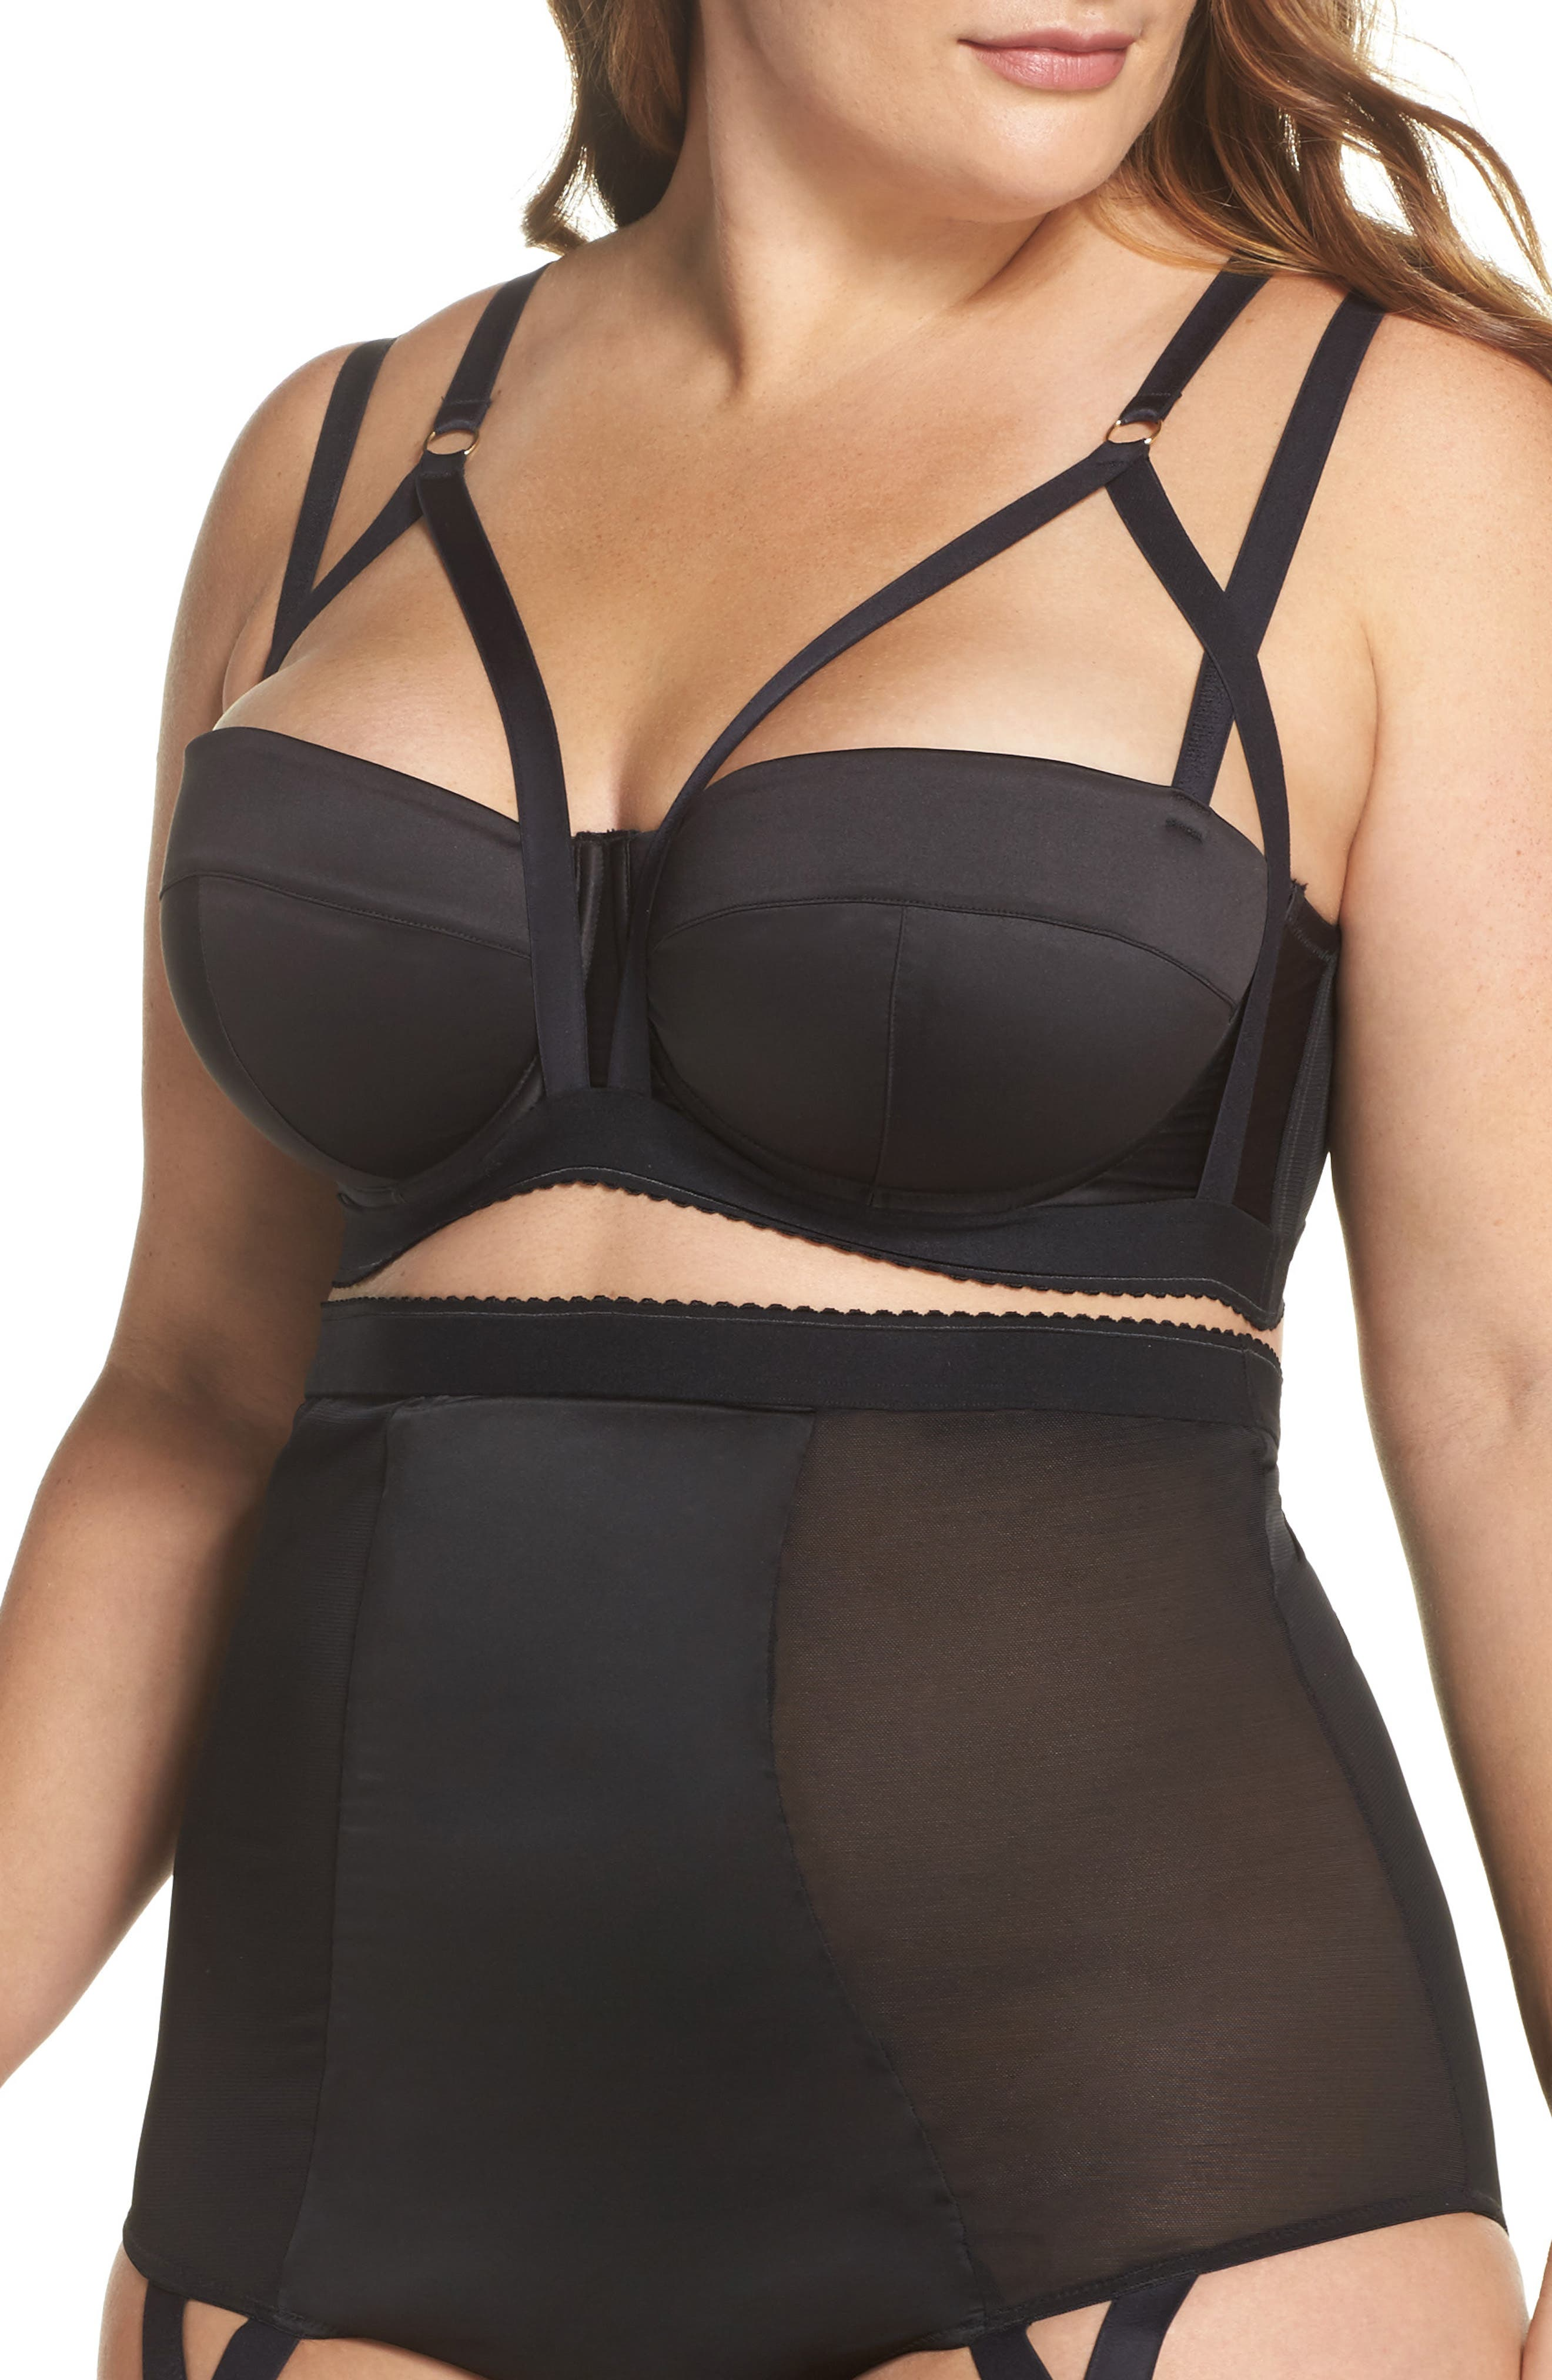 Playful Promies Candace Noir Strappy Underwire Bra,                         Main,                         color,